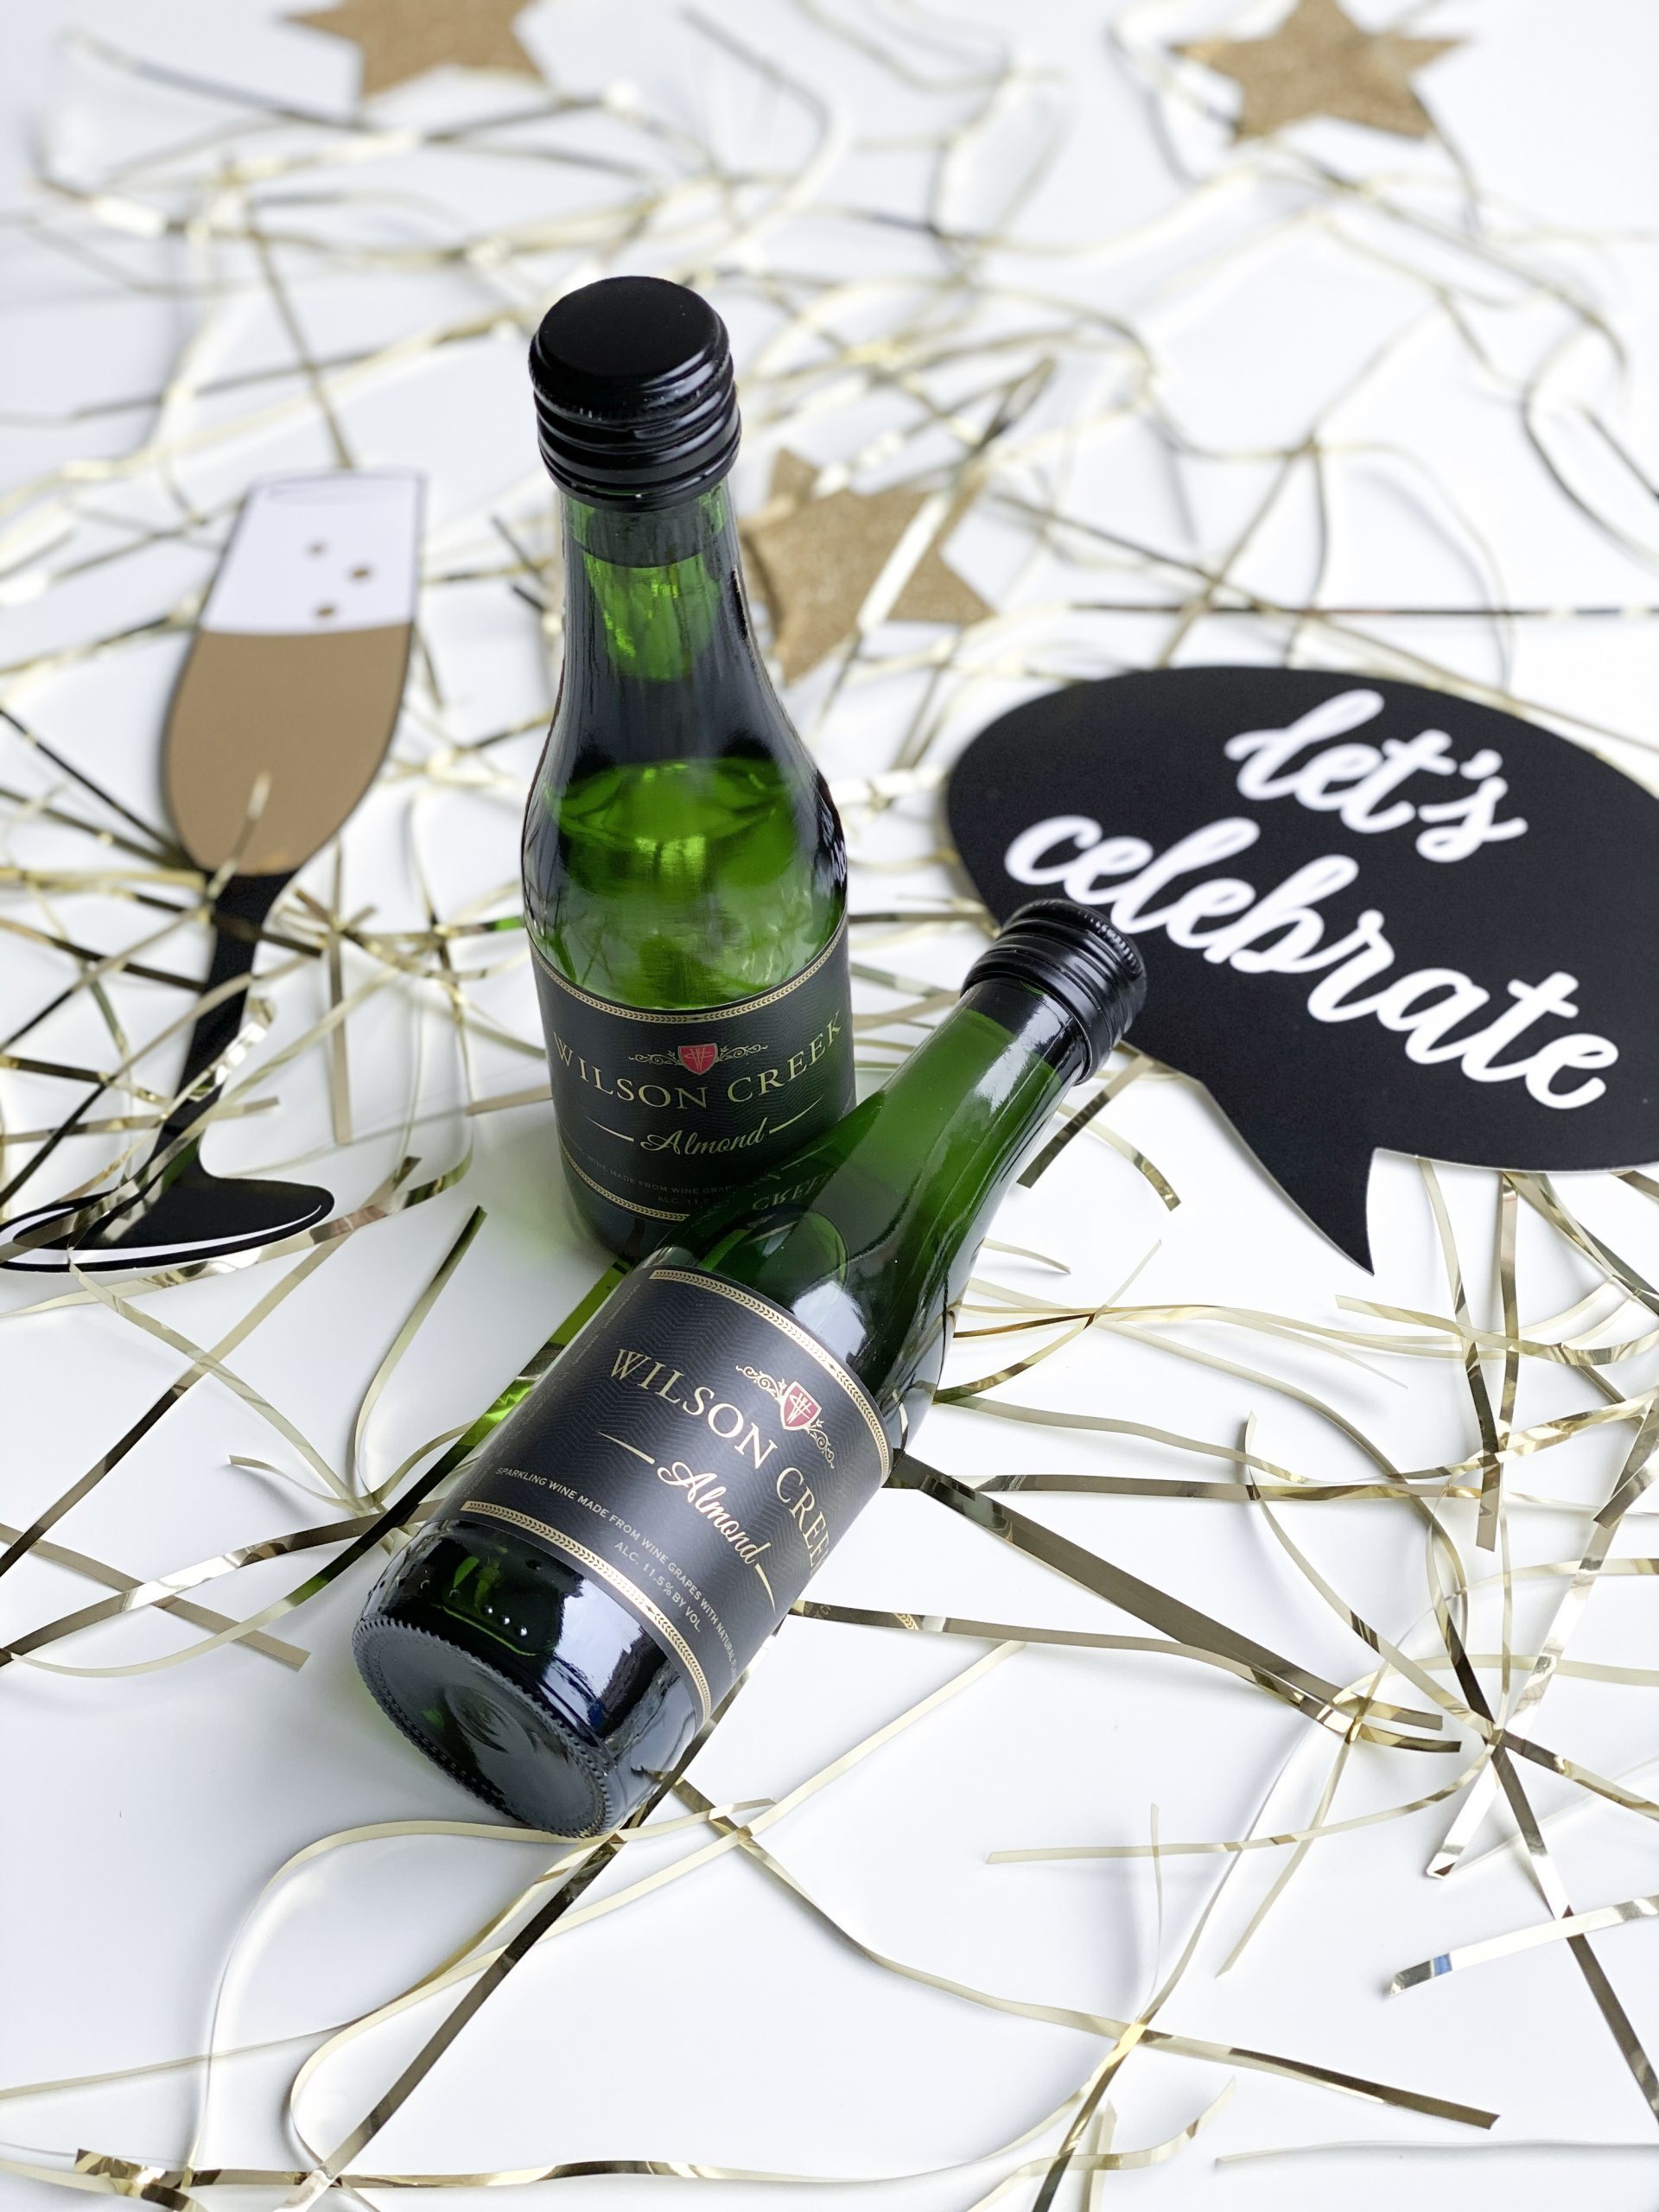 Wilson Creek Winery 2 small Almond Sparkling Wine Bottles with gold confetti and a let's celebrate quote bubble